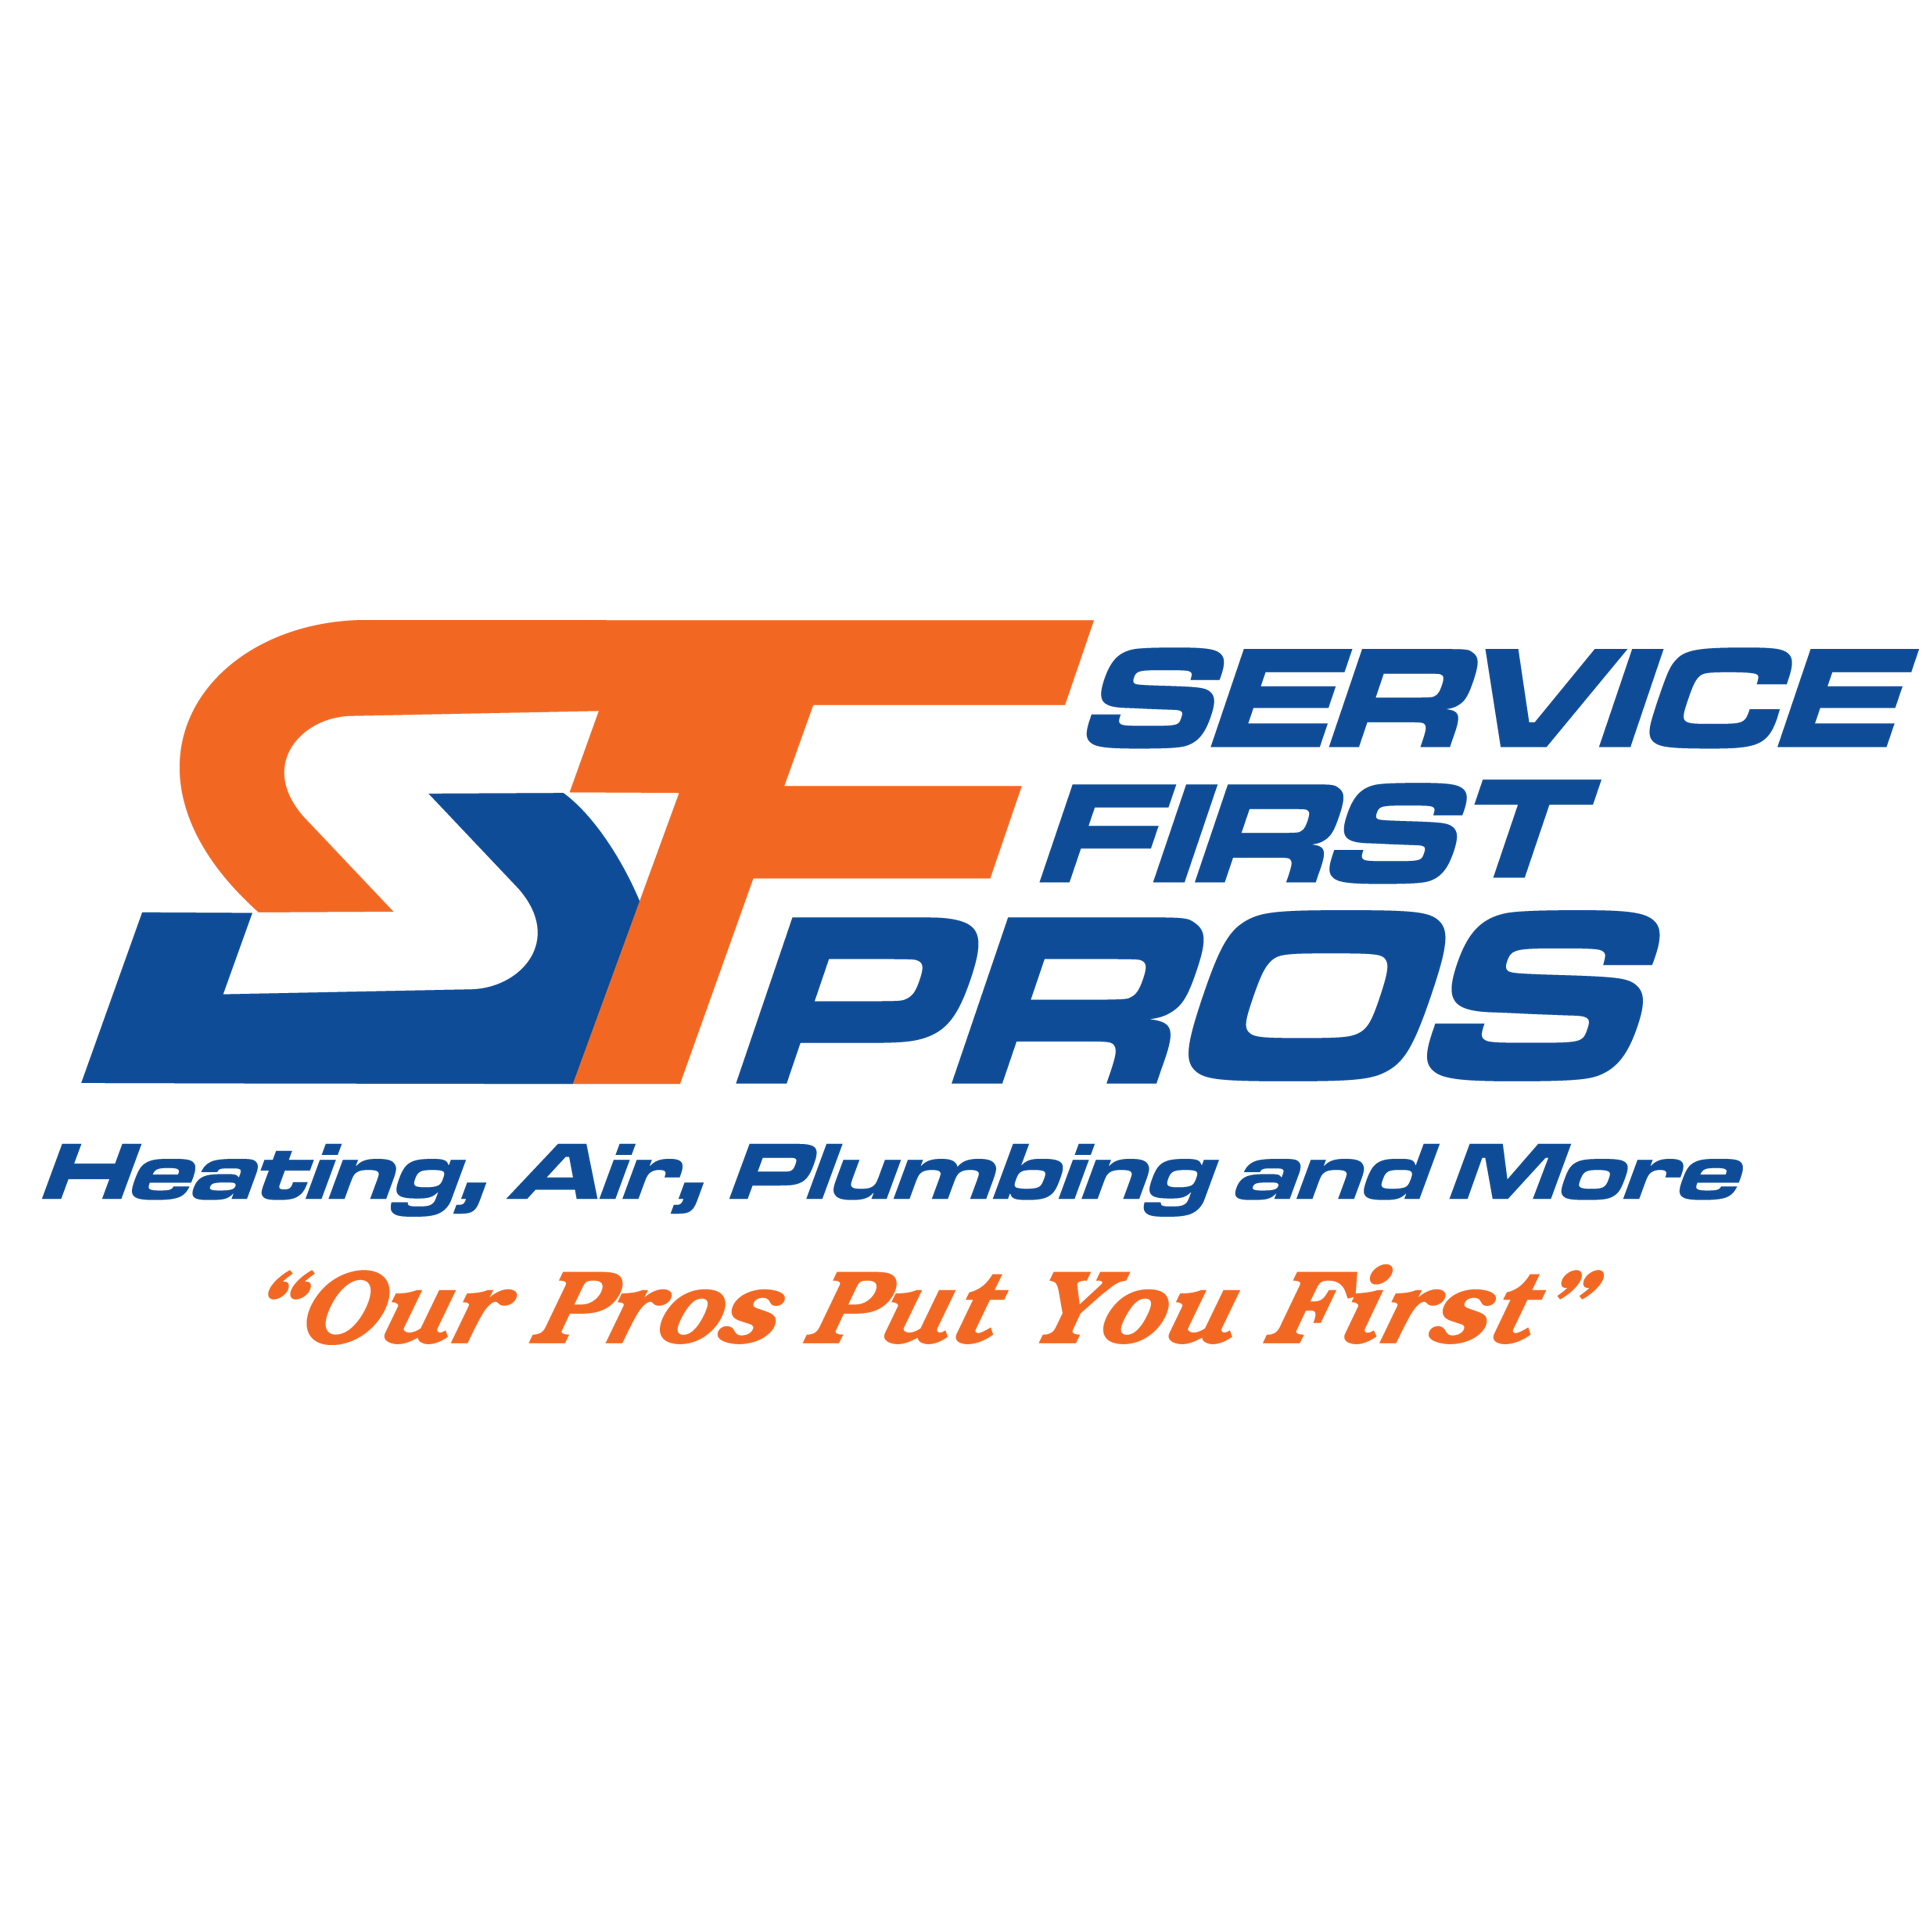 Service First Pros